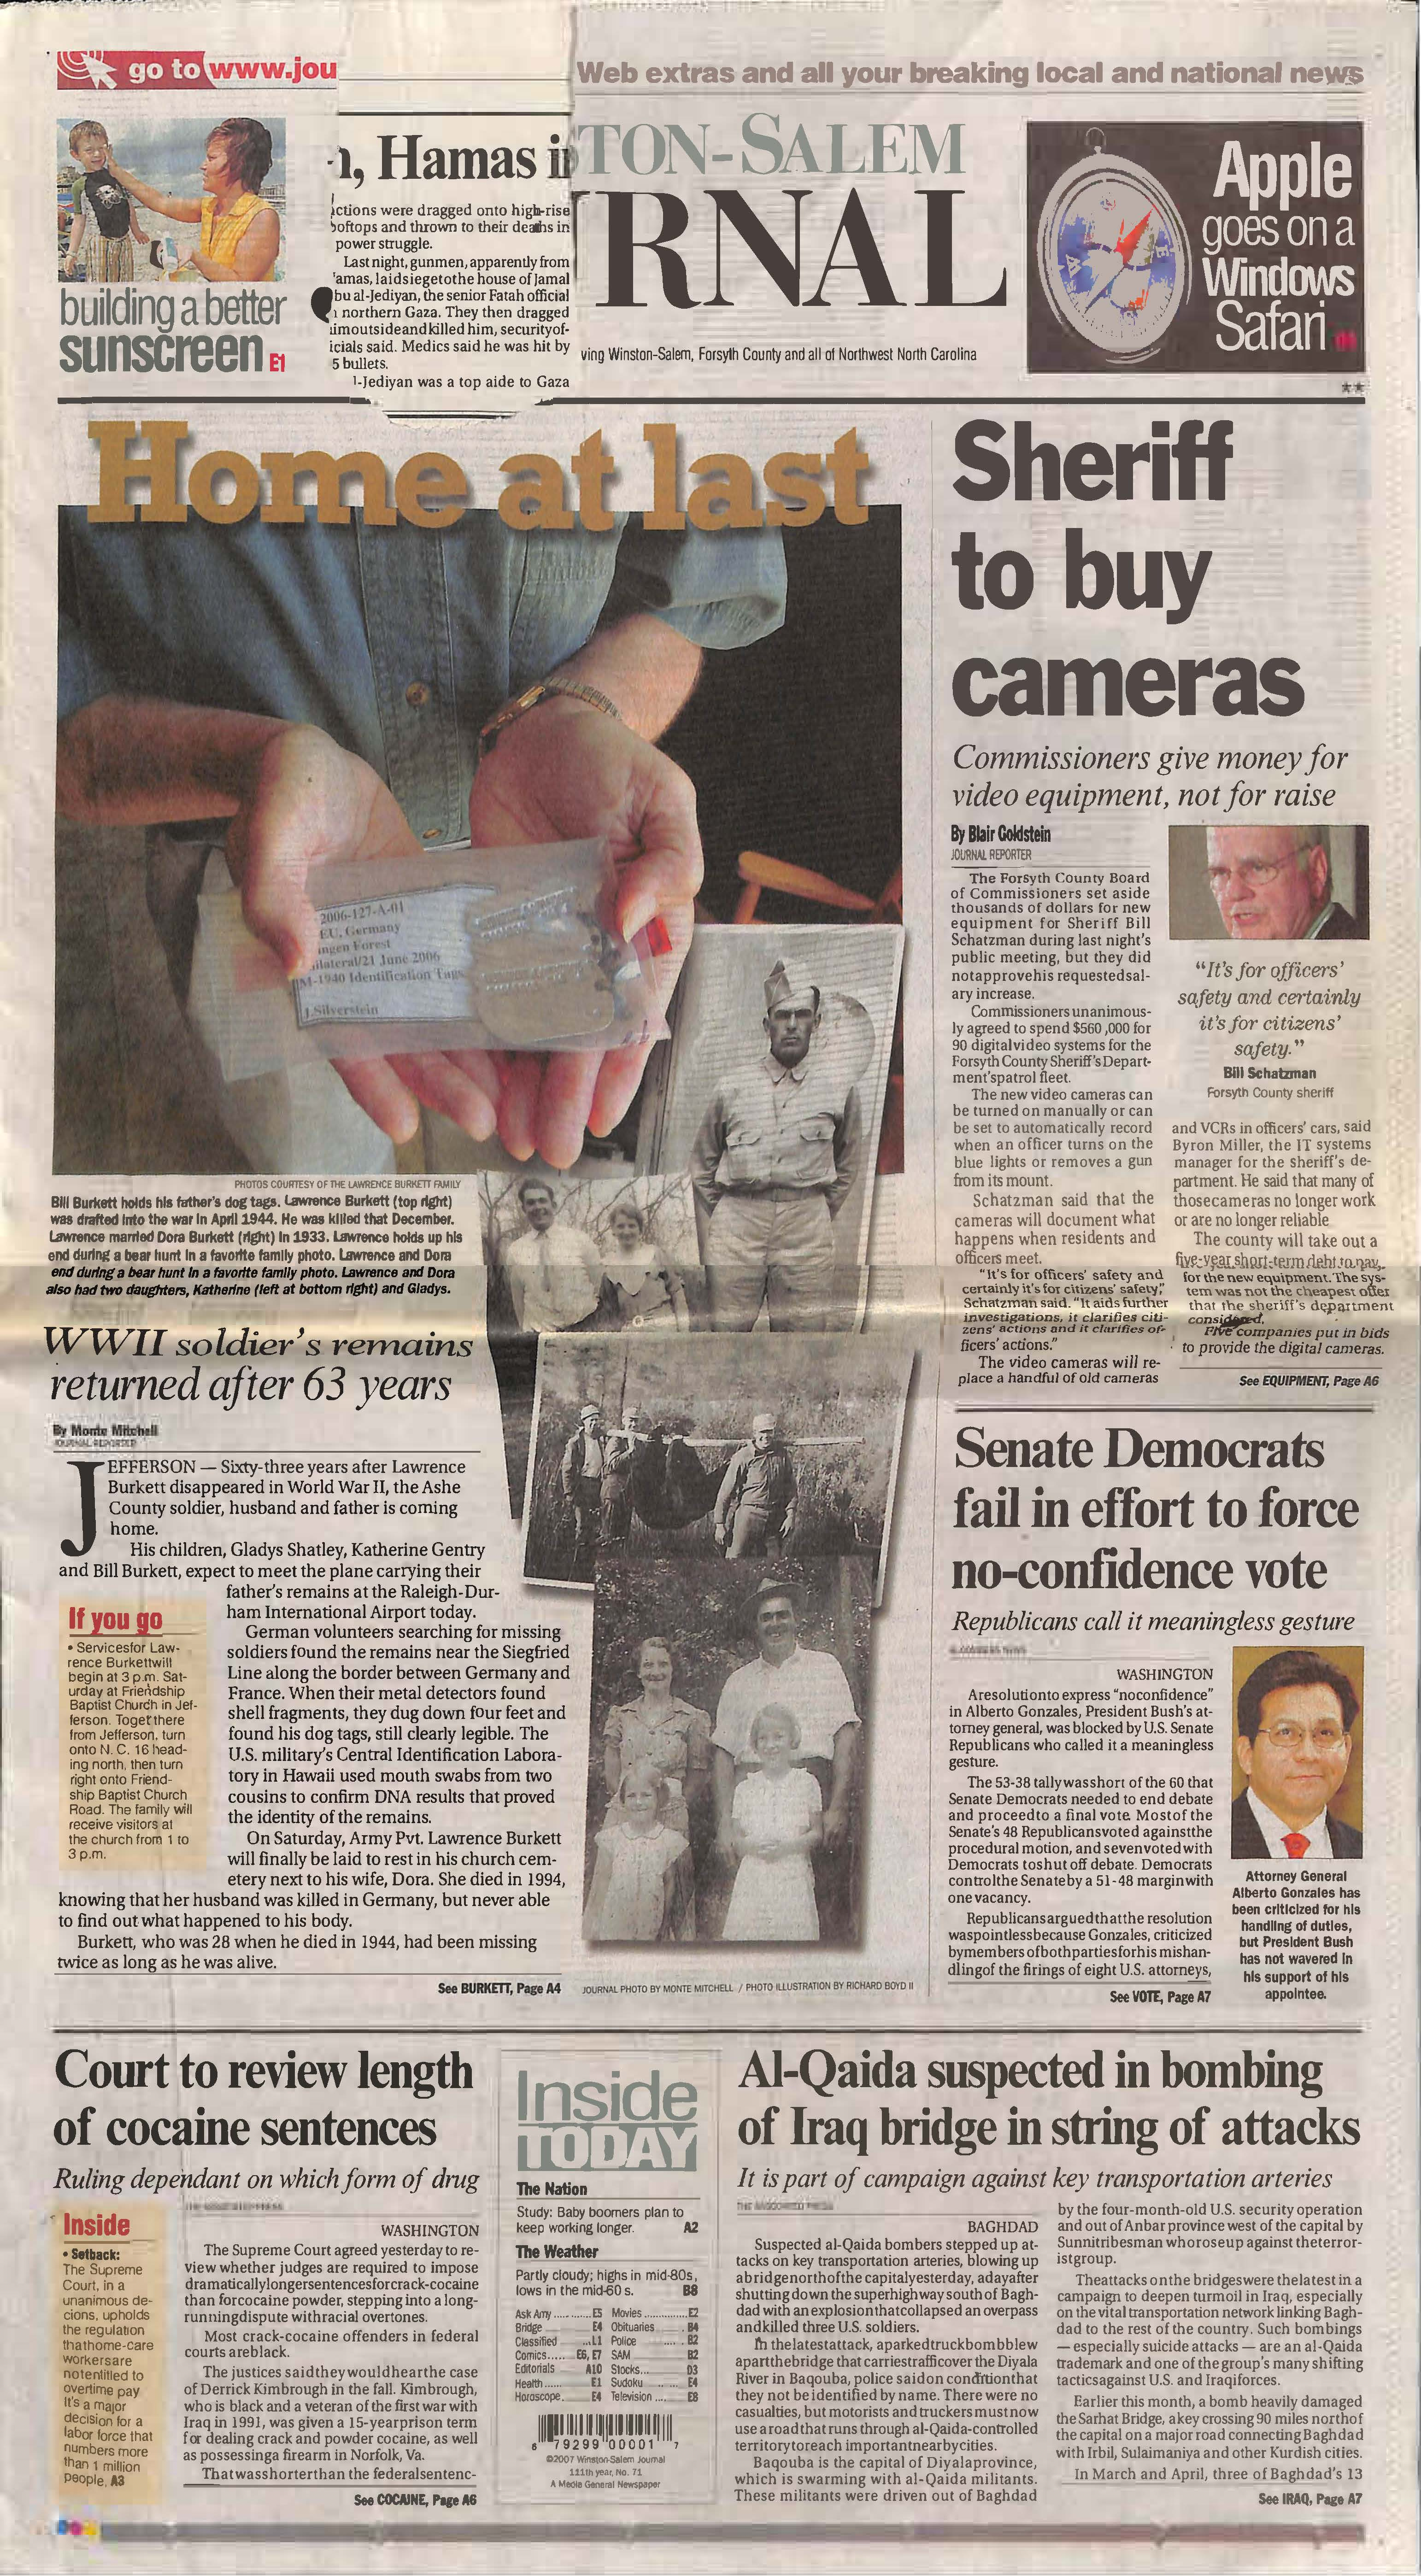 front page of newspaper featuring photo of hands holding soldier's dog tags